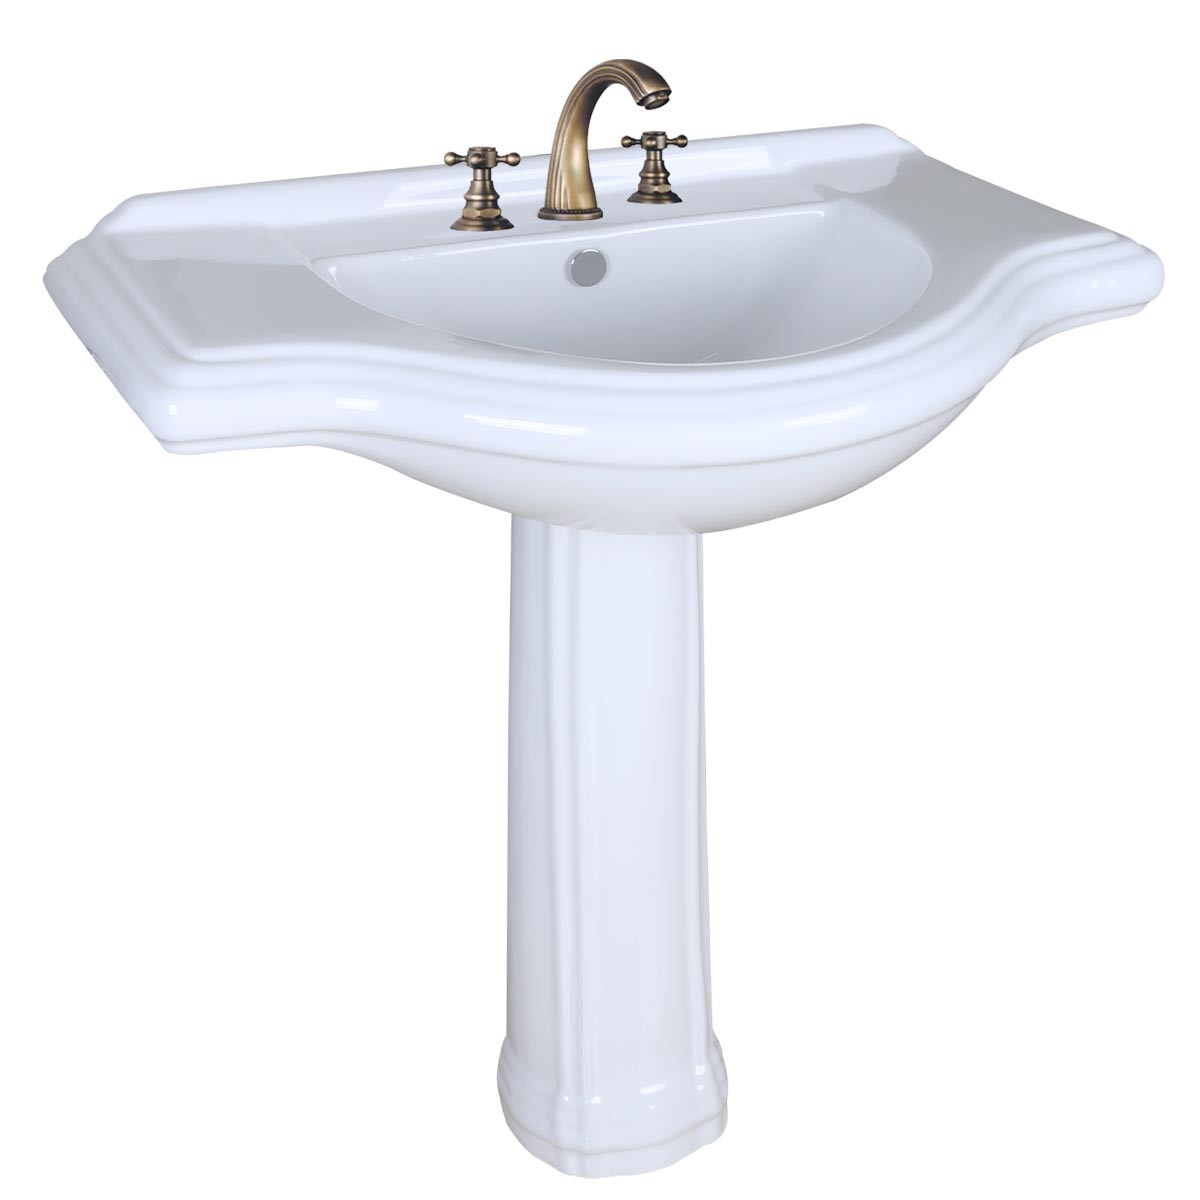 "Large Pedestal Sink Bathroom Console 8"" Widespread 34"" W"